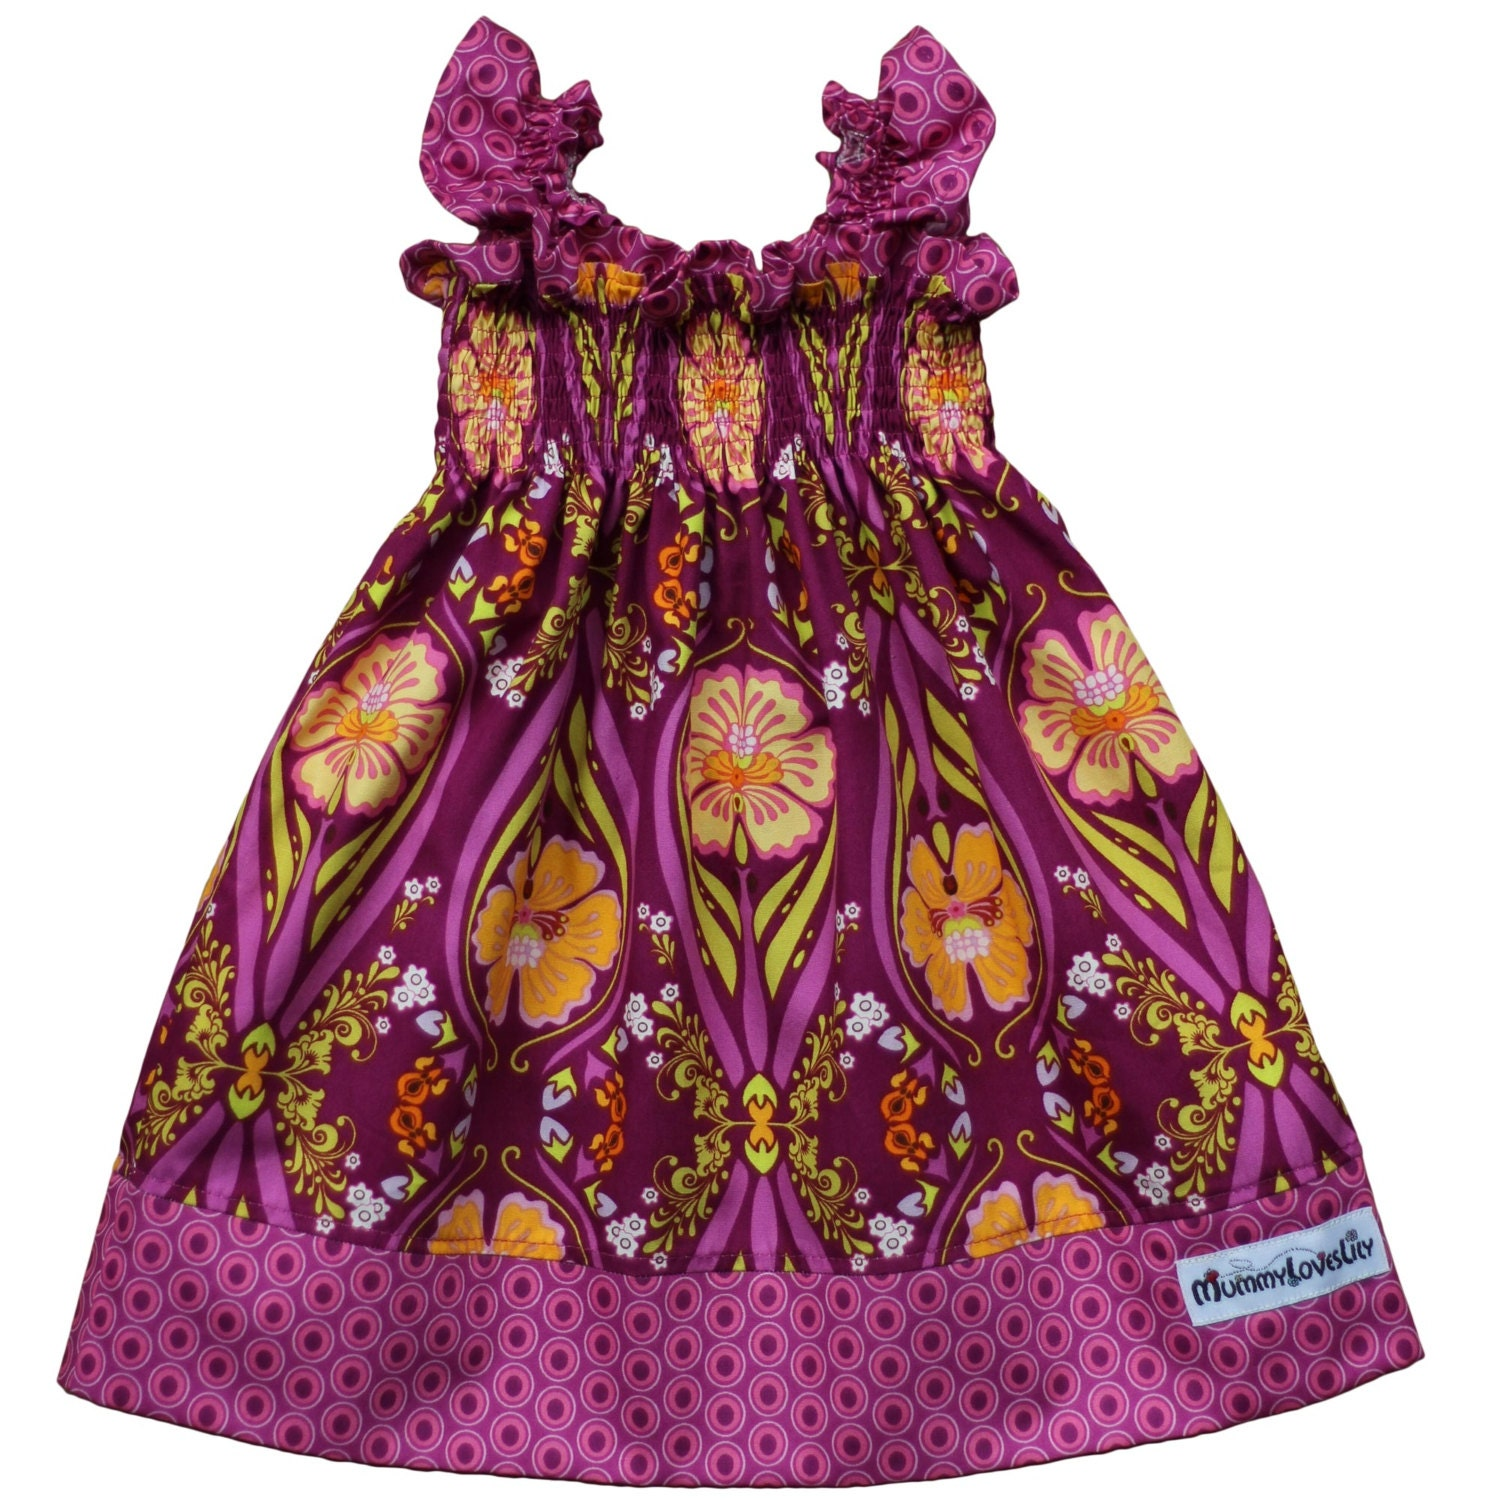 Shirred Dress Shirred Summer Dress Smocked Dress Sundress Girls Dress (Choice of Fabric) Sizes 03 months to 78 years MADE TO ORDER